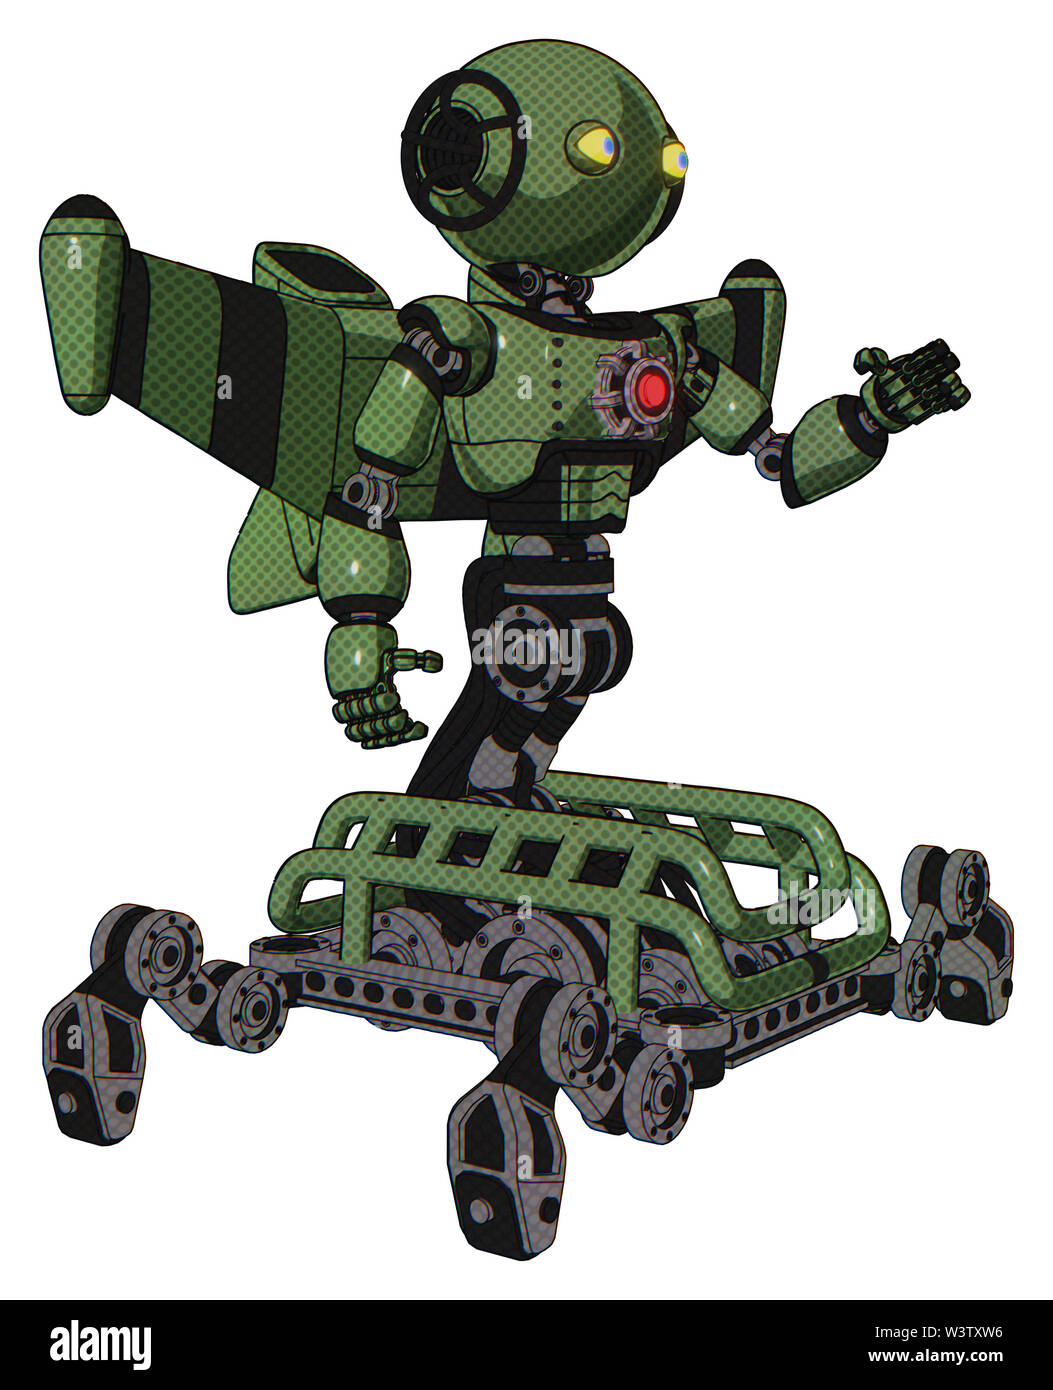 Robot containing elements: oval wide head, yellow eyes, light chest exoshielding, red energy core, stellar jet wing rocket pack, insect walker legs. M - Stock Image